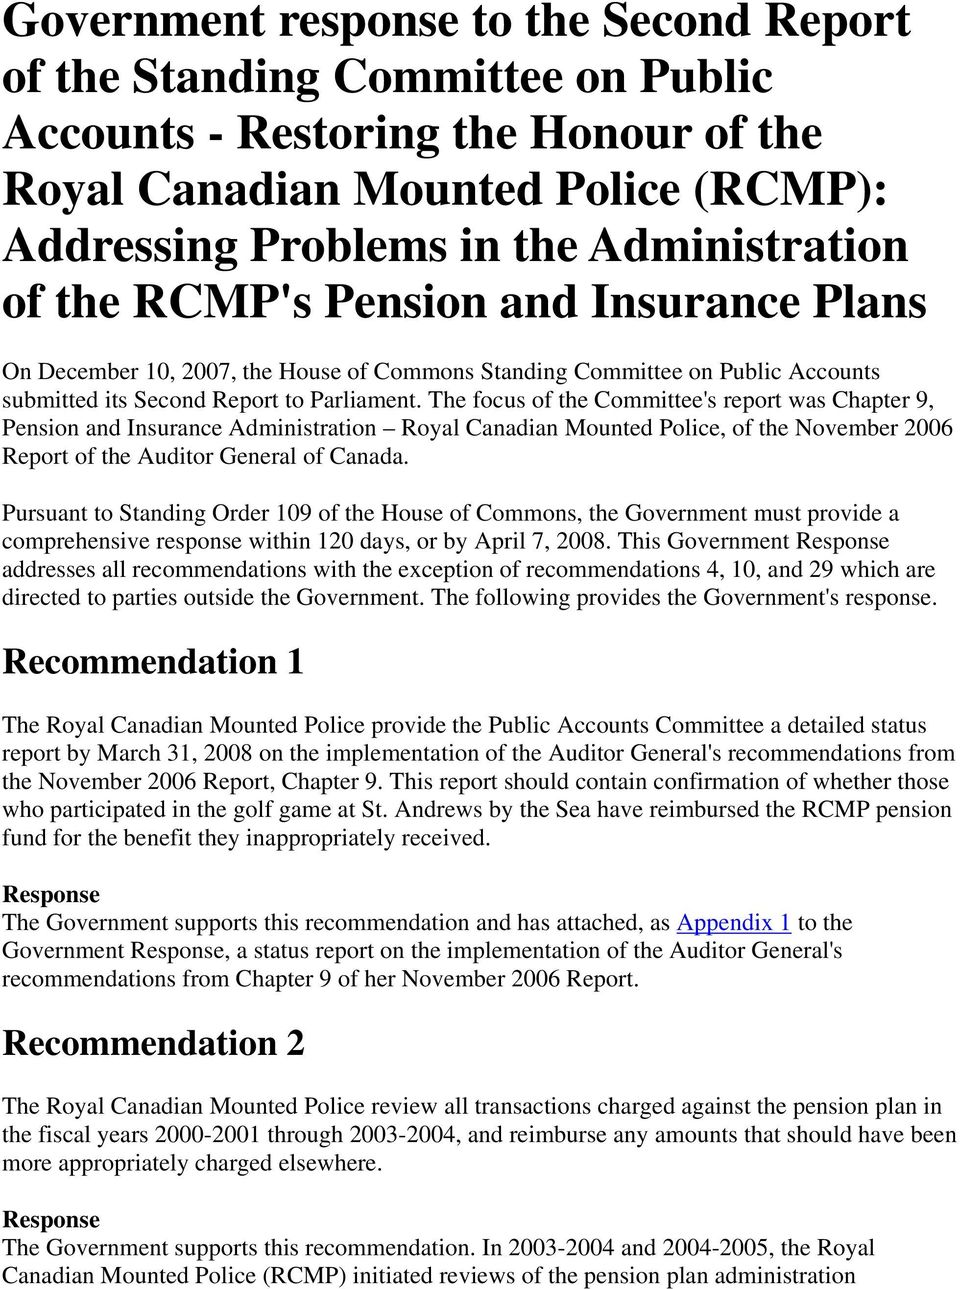 The focus of the Committee's report was Chapter 9, Pension and Insurance Administration Royal Canadian Mounted Police, of the November 2006 Report of the Auditor General of Canada.